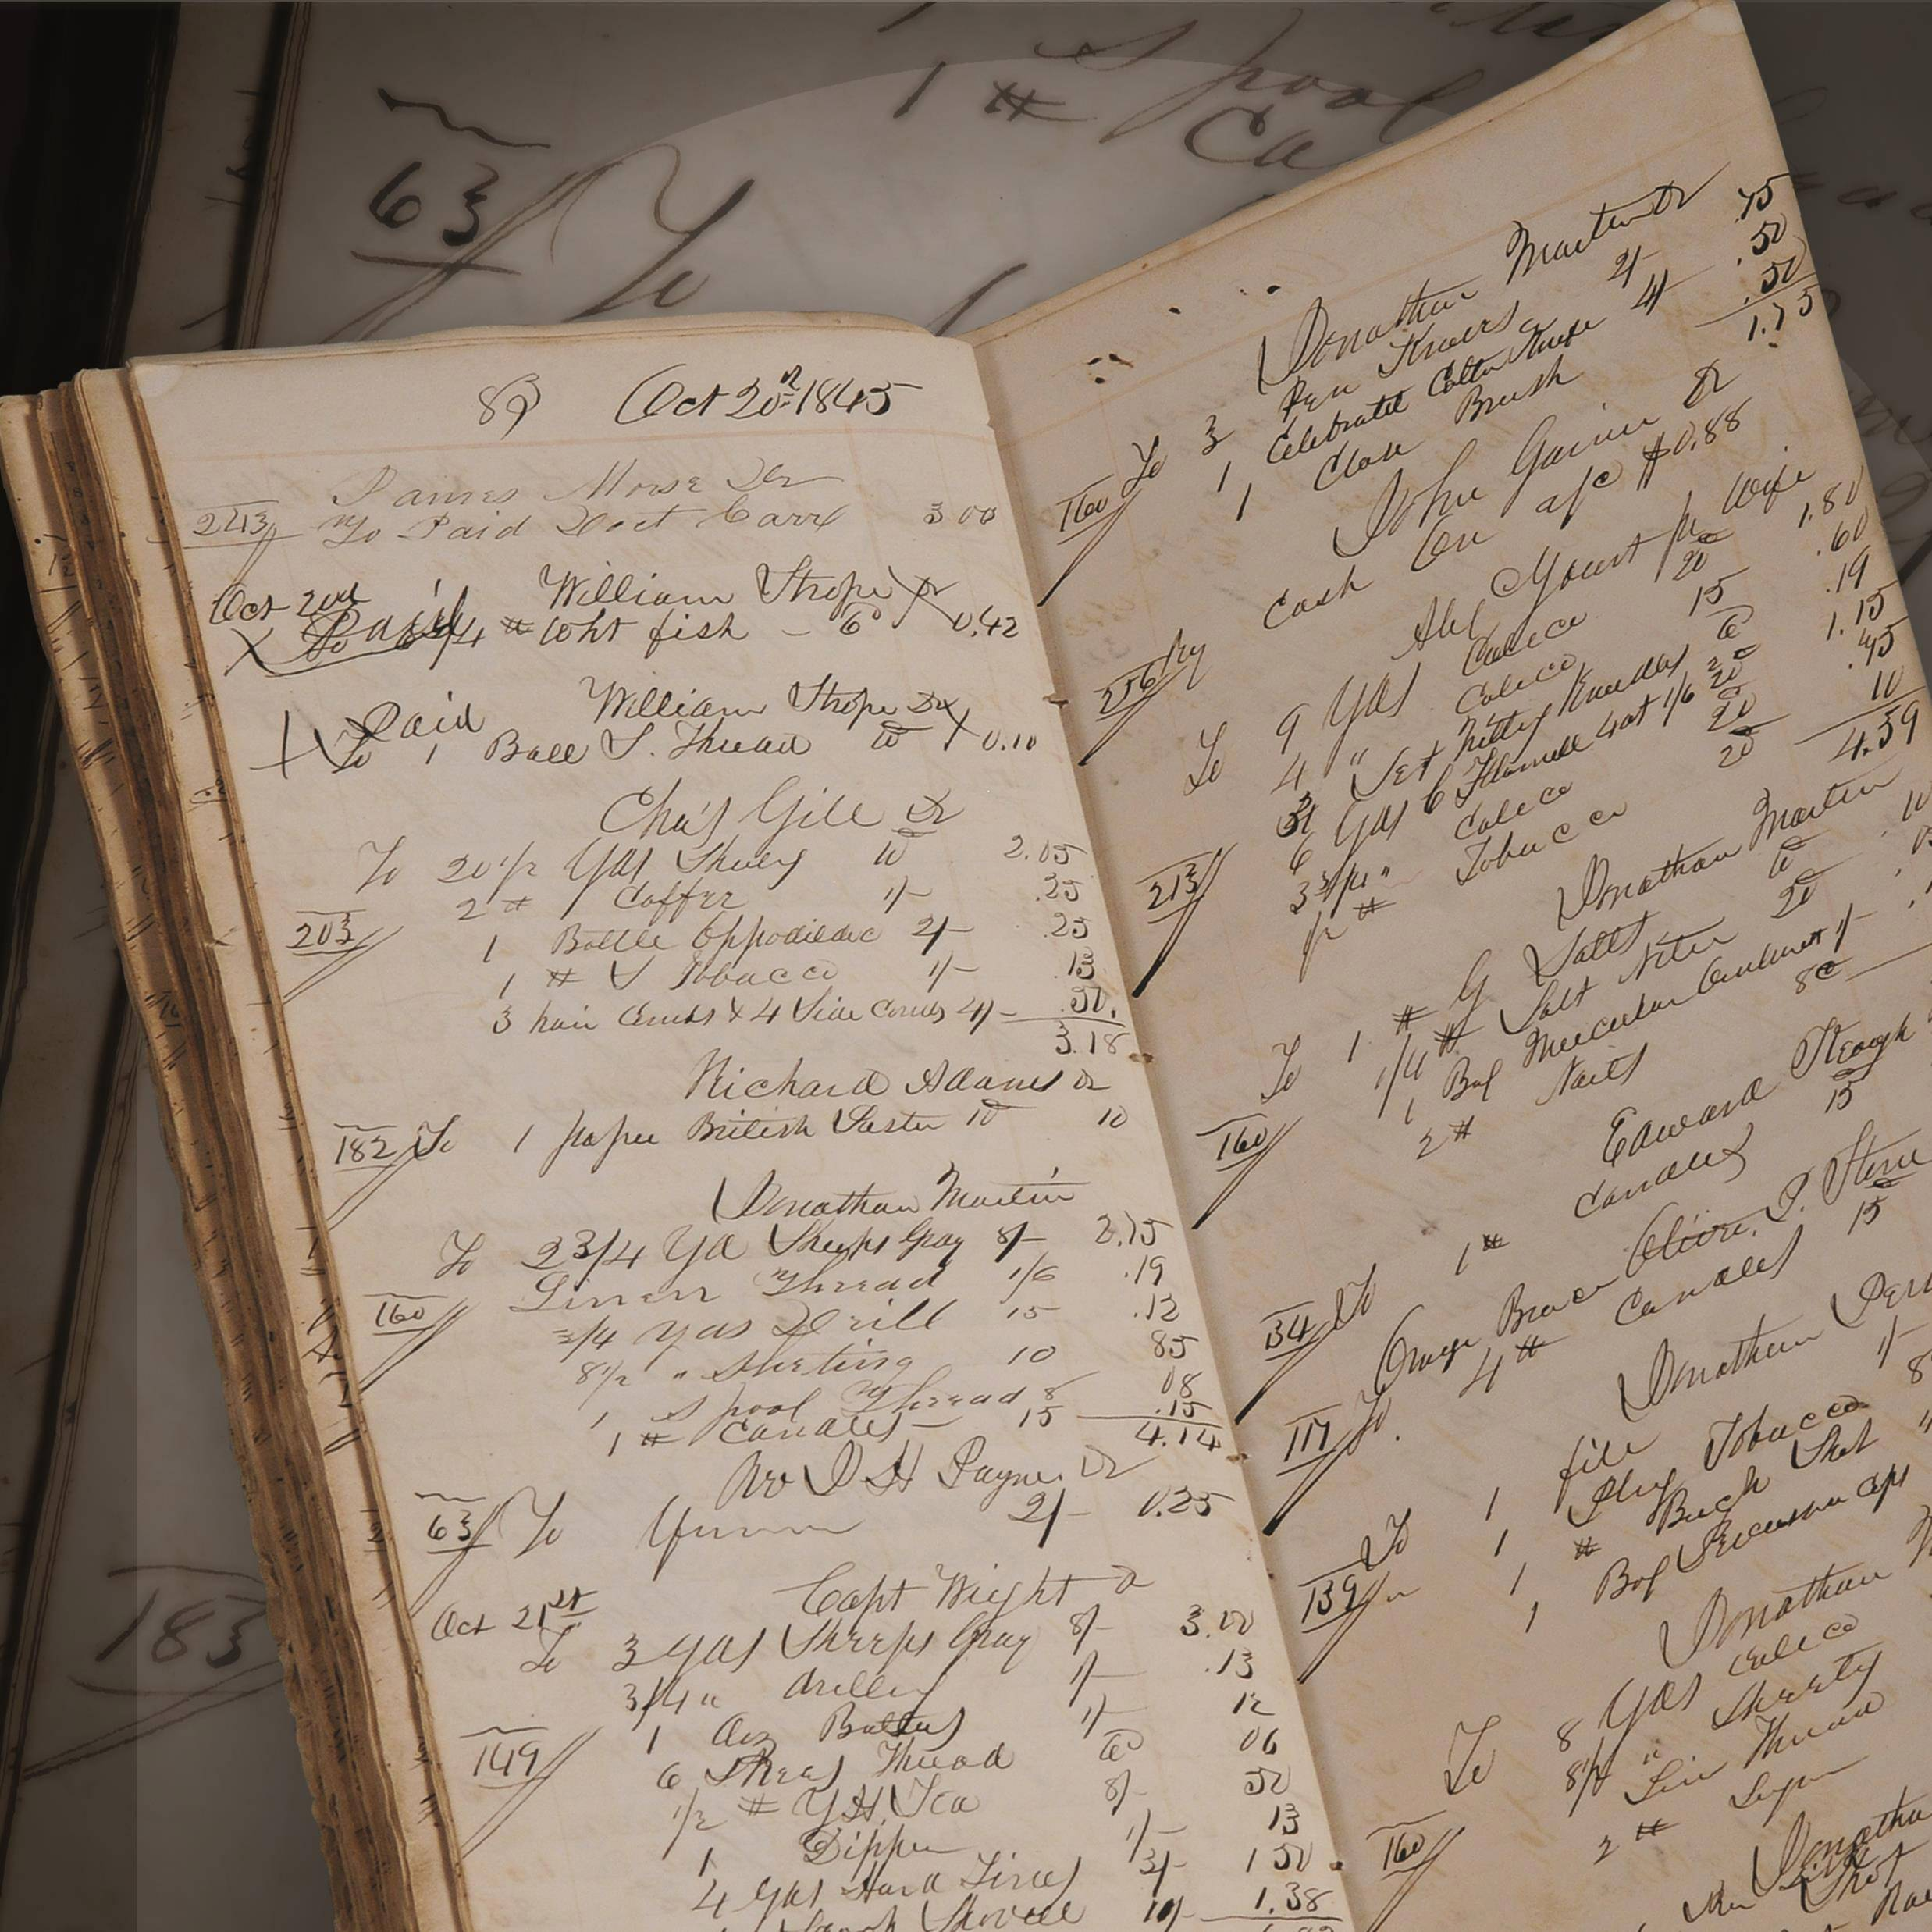 Easton's General Store ledger, one of the thousands of historical artifacts at the Lake County Discovery Museum.